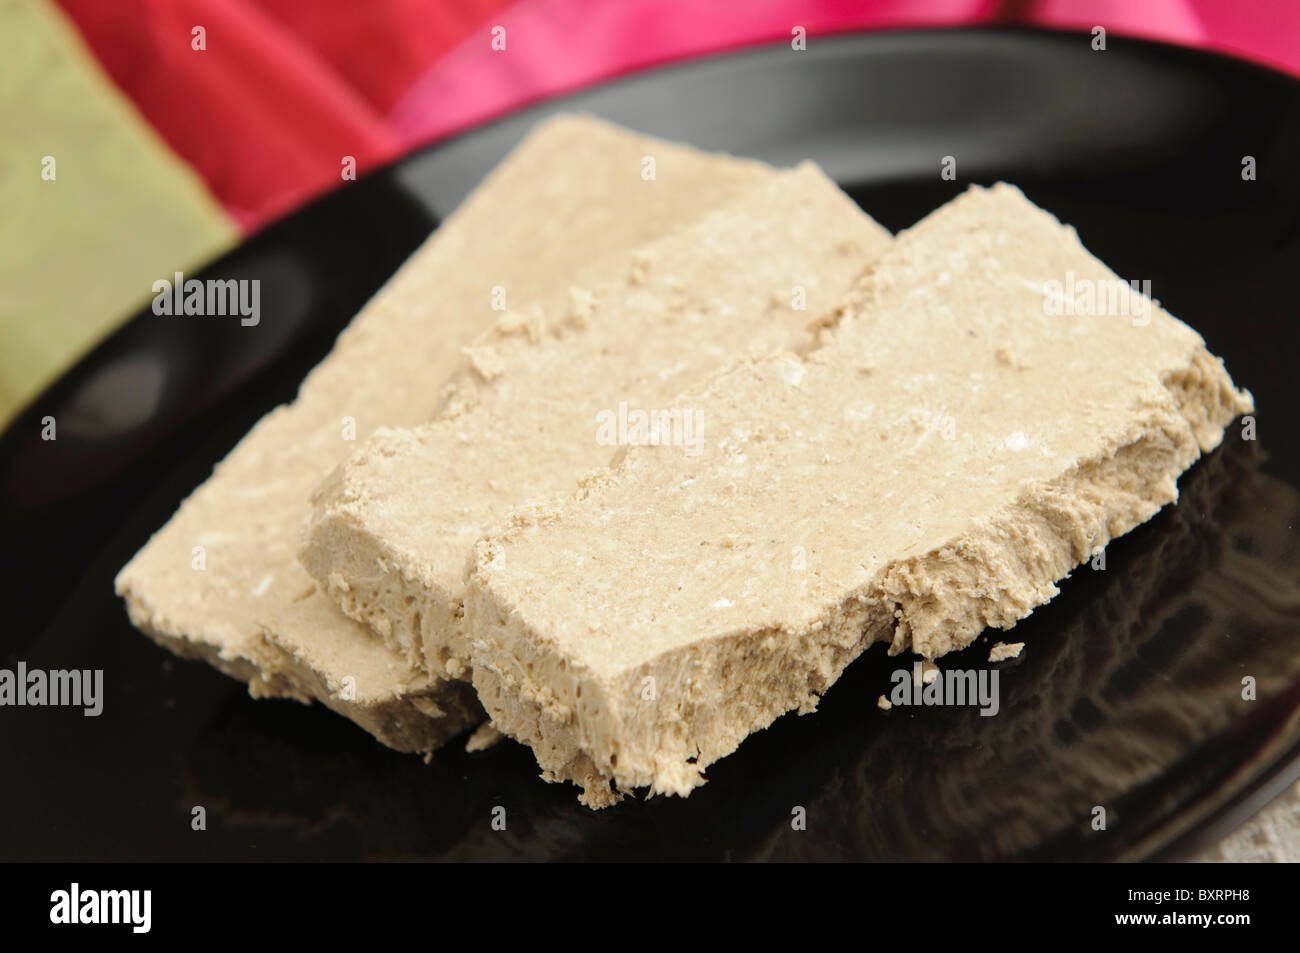 Sunflower Halva - Stock Image